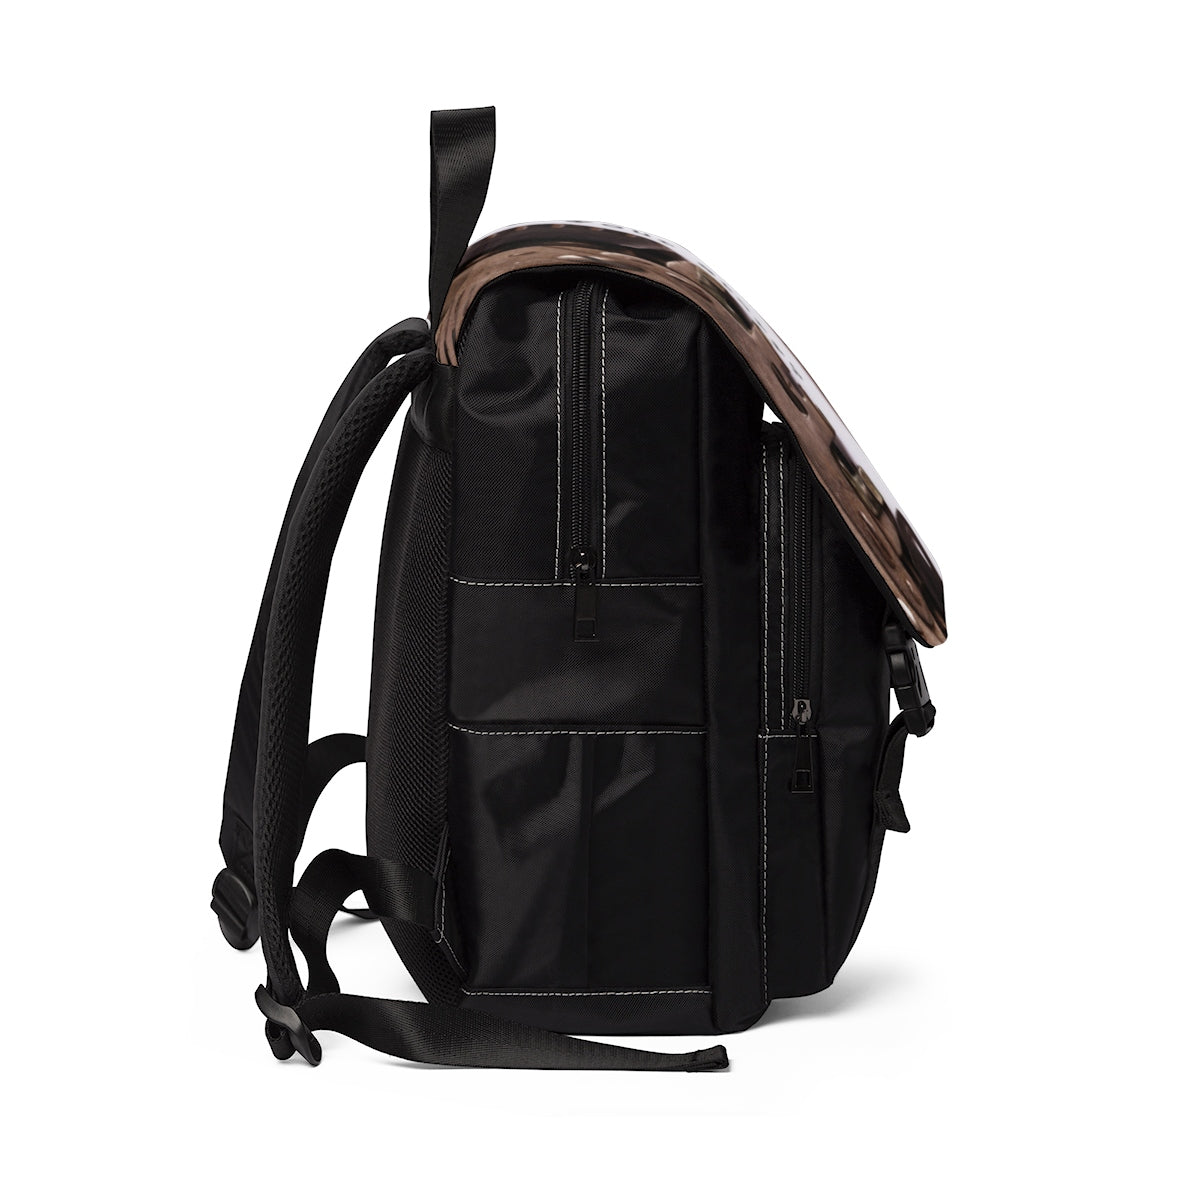 What's your story? Unisex Casual Shoulder Backpack